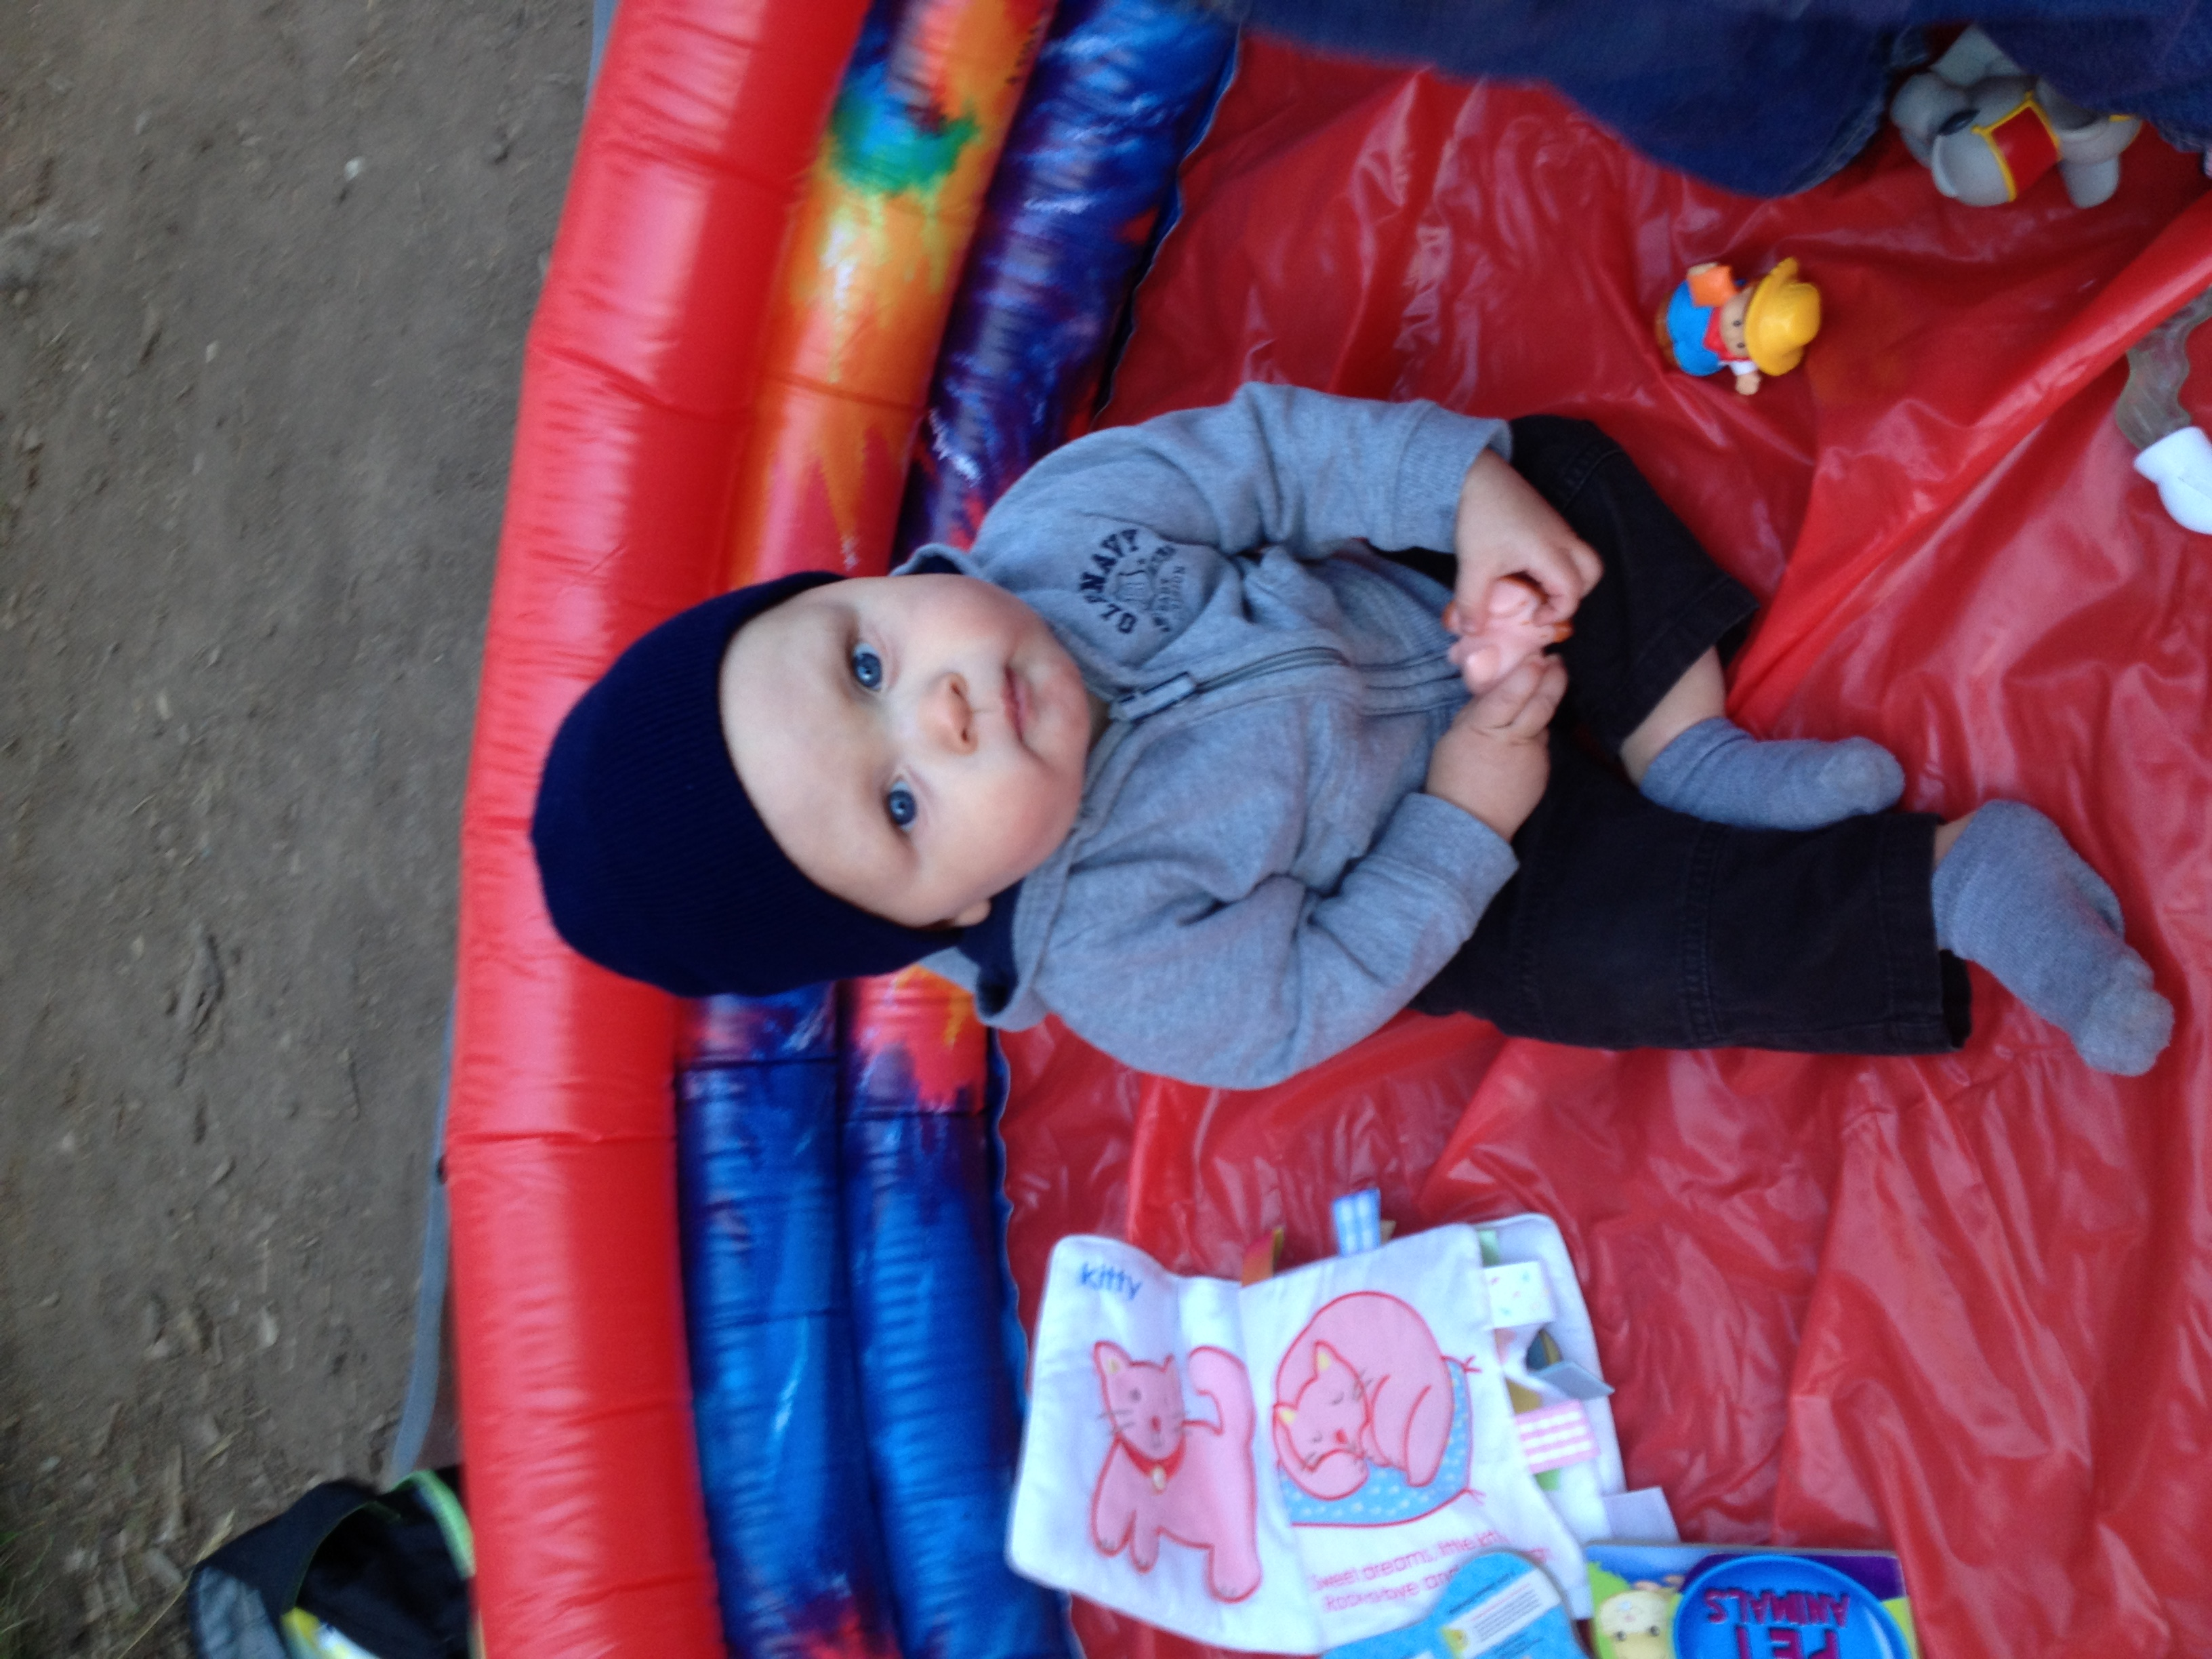 This was his facial expression the entire time in the kiddie pool Laiken had set up as a play pen